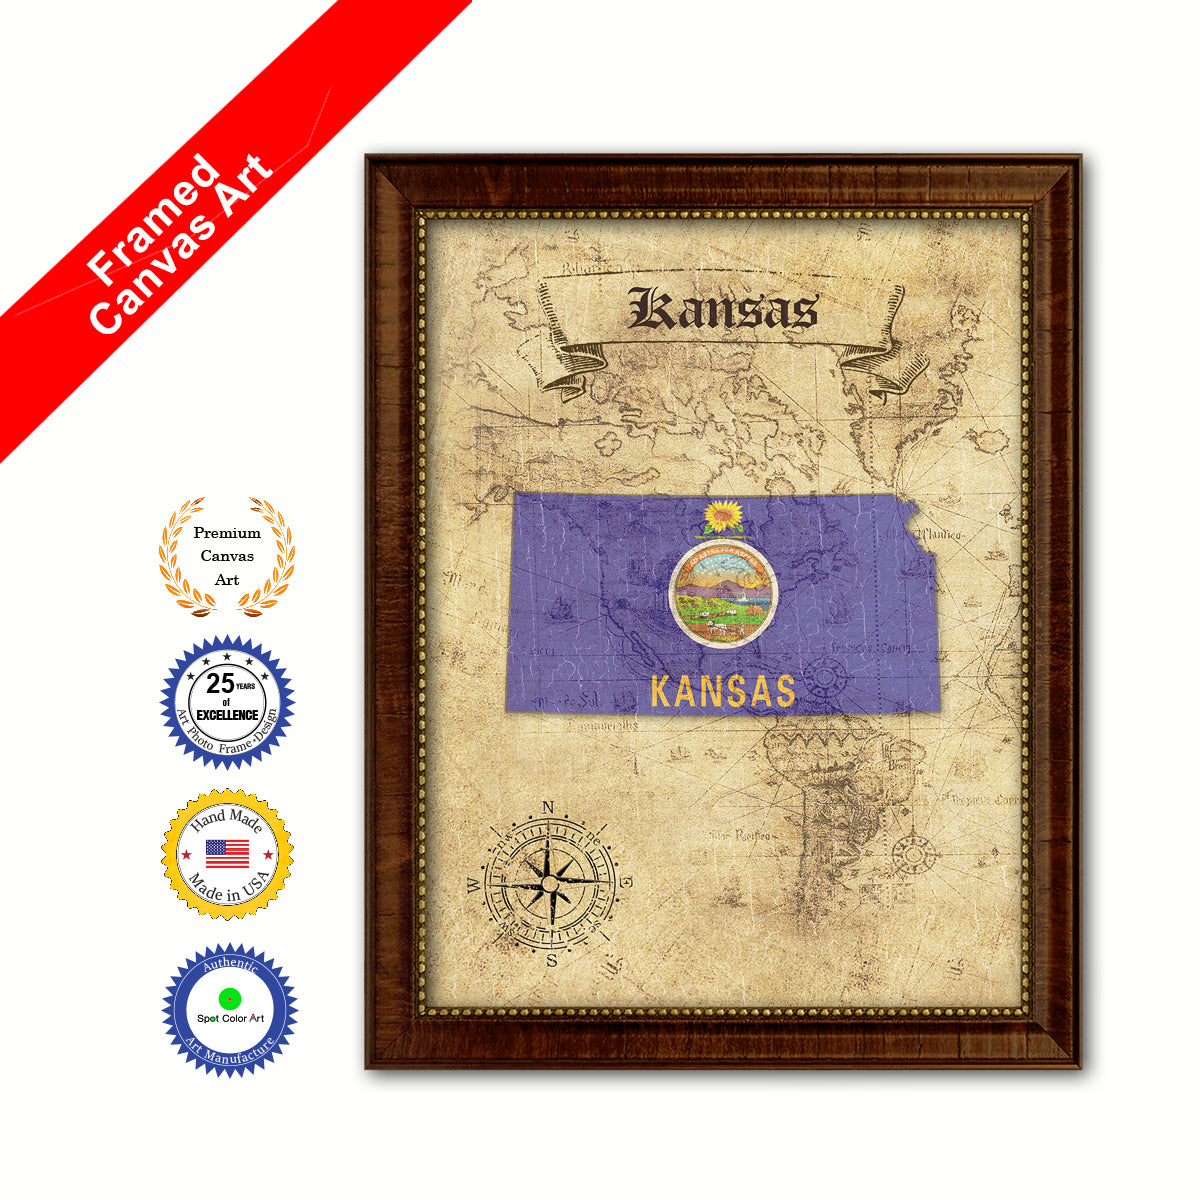 Kansas State Vintage Map Brown Framed Canvas Print Home Decor Wall ...